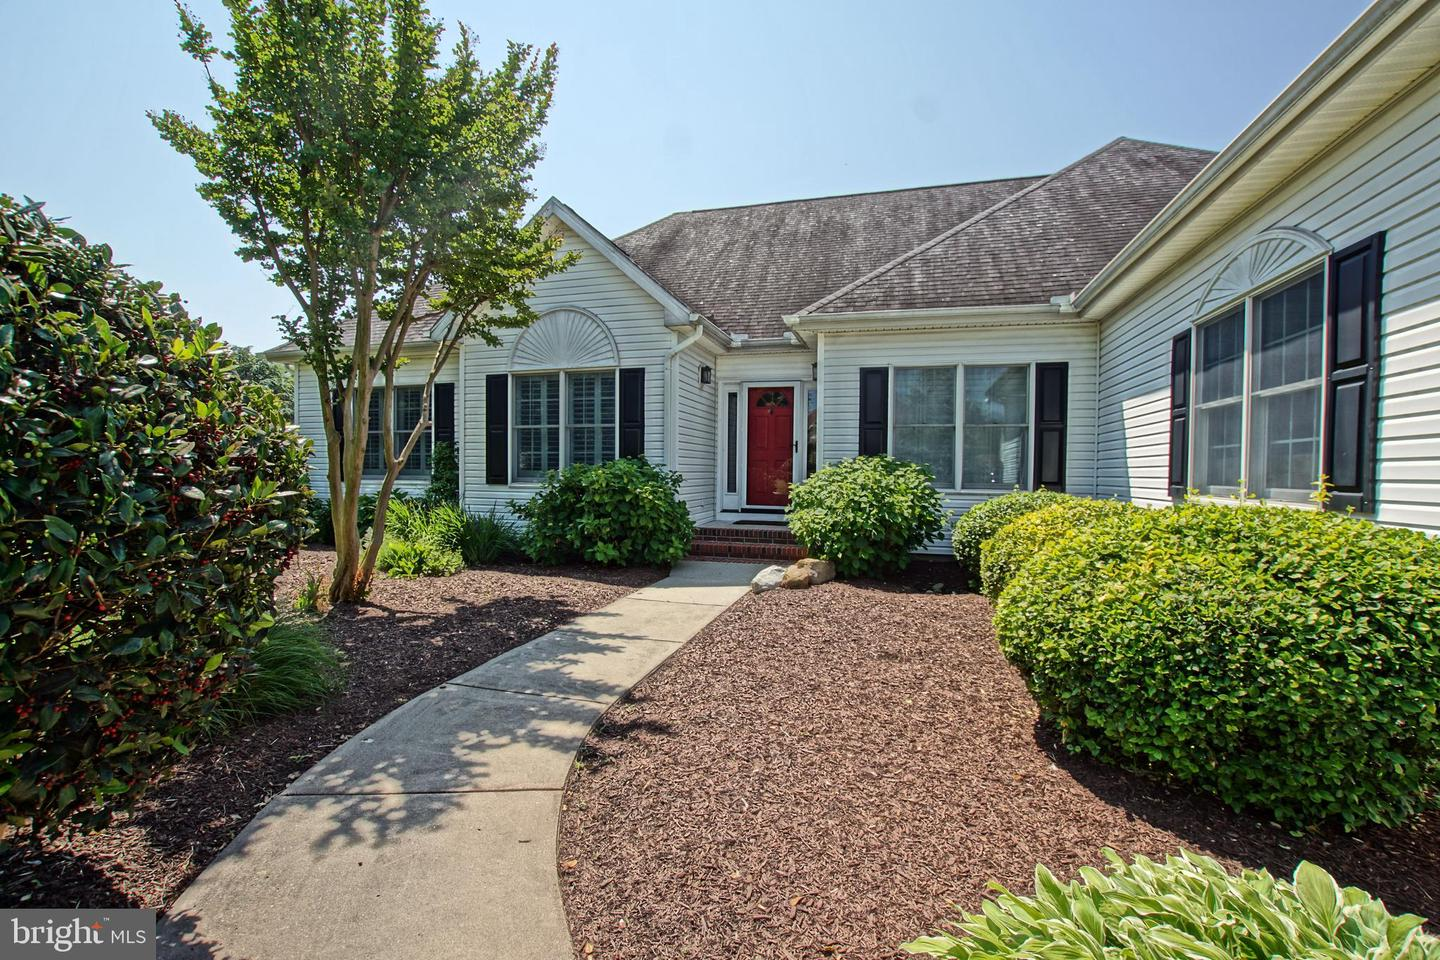 DESU141588-301765387491-2019-07-29-15-51-09 2 Southwood Shores Dr | Rehoboth Beach, DE Real Estate For Sale | MLS# Desu141588  - Lee Ann Group